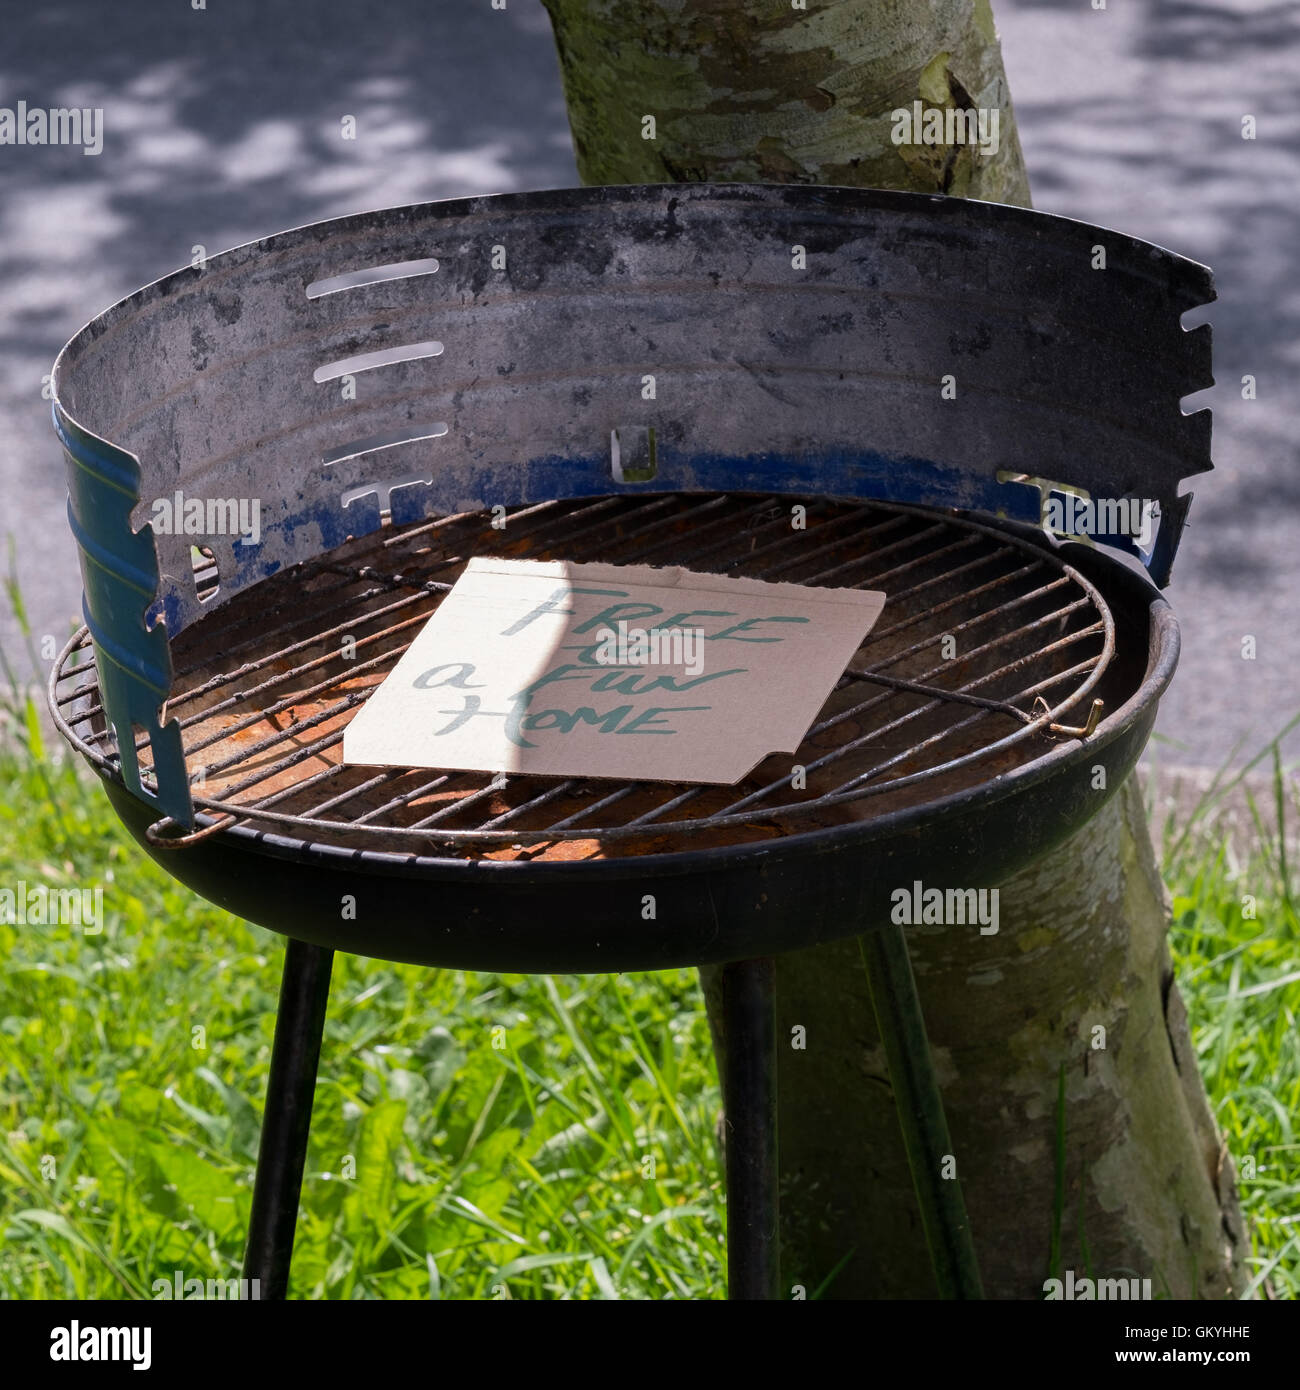 A barbeque being freecycled by the side of the road with a message reading 'Free to a fun home'. - Stock Image